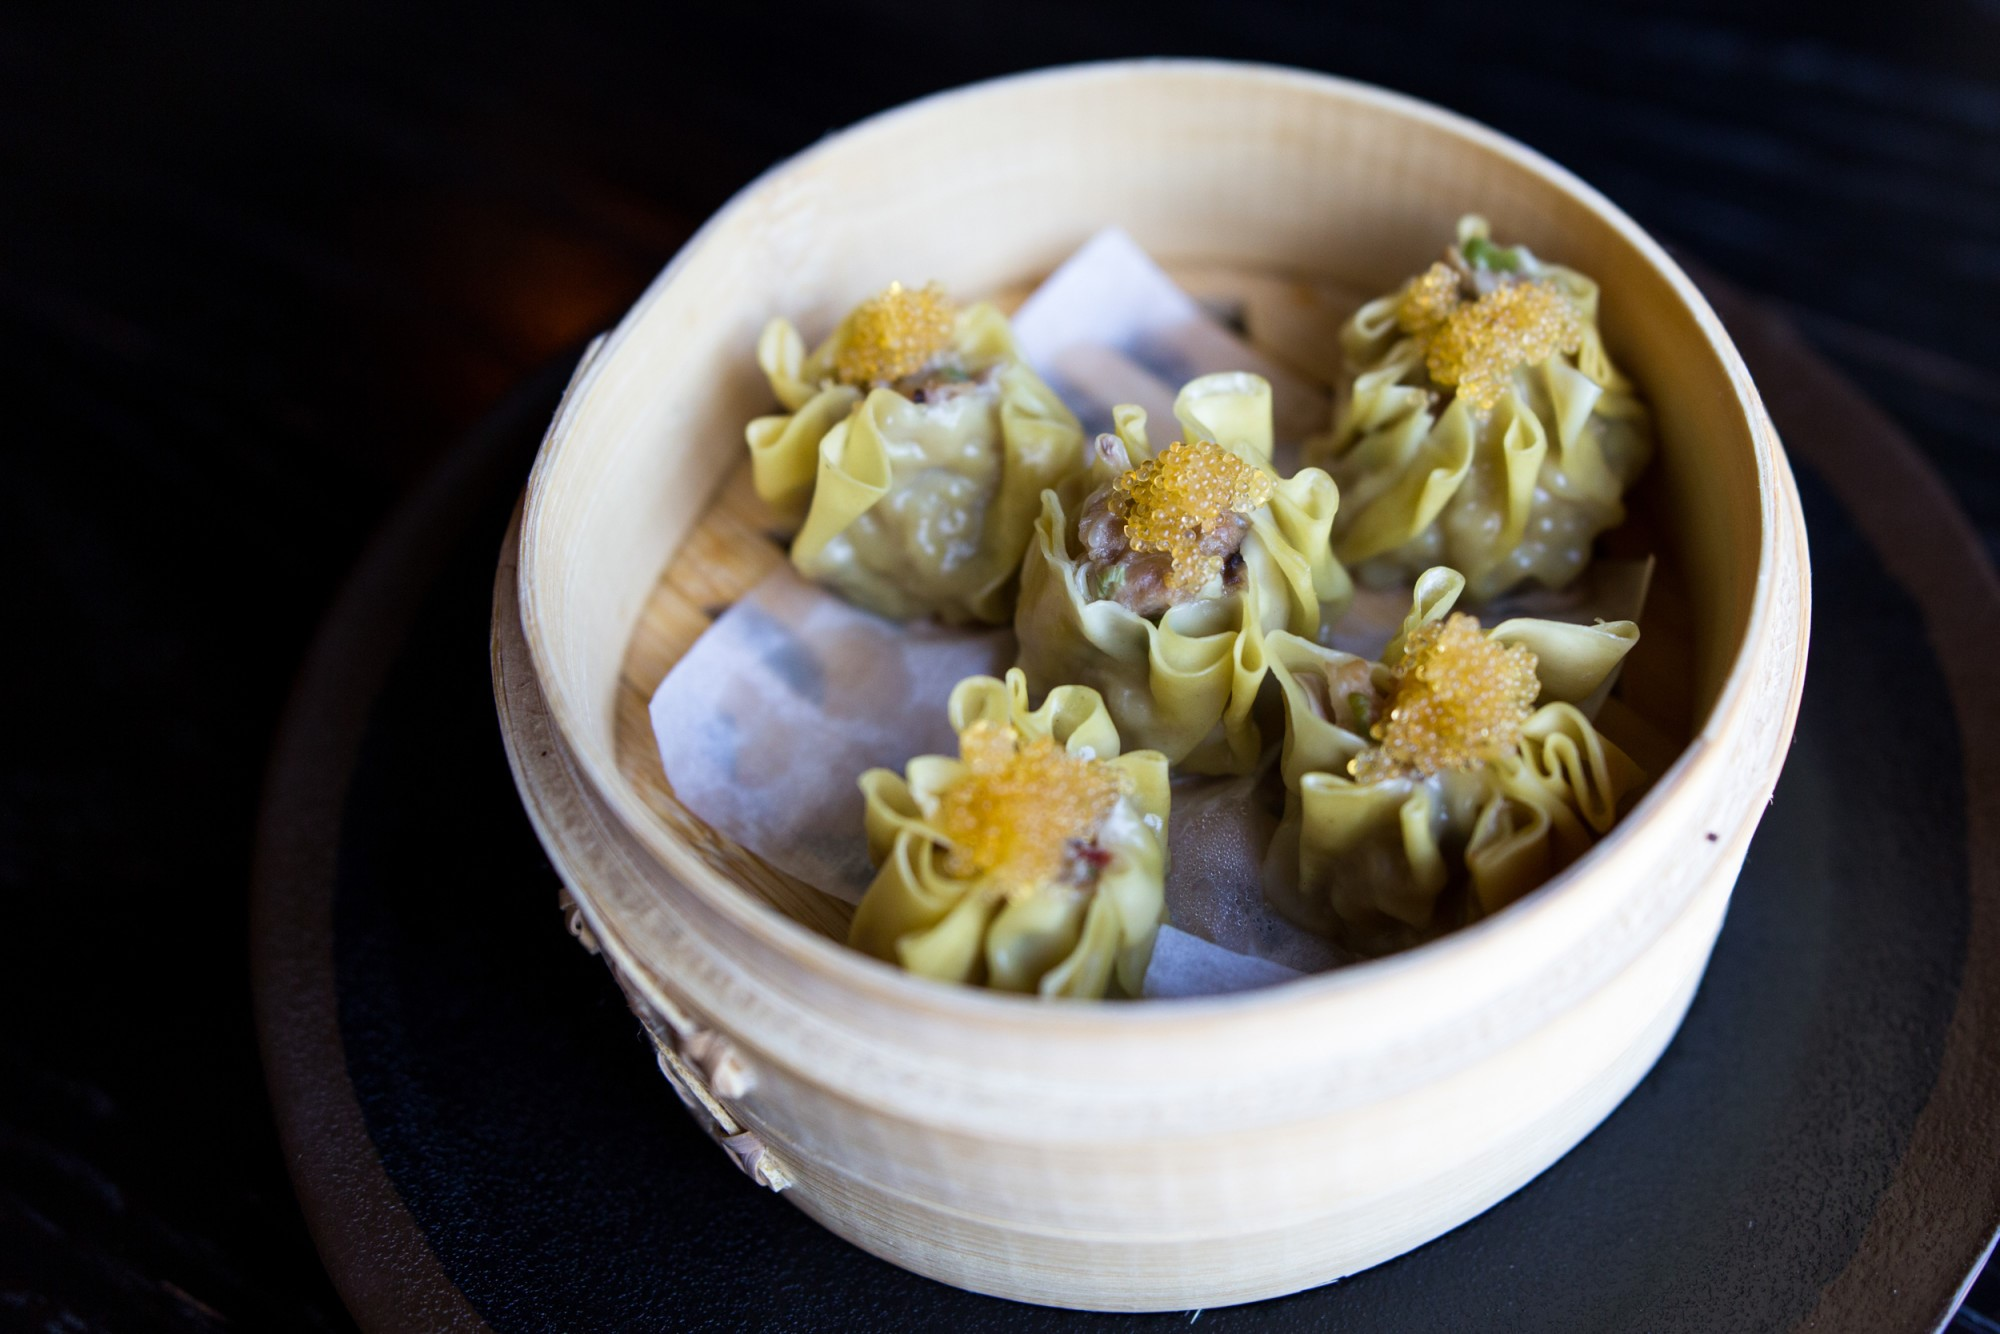 Crab and leek shumai at Old Thousand